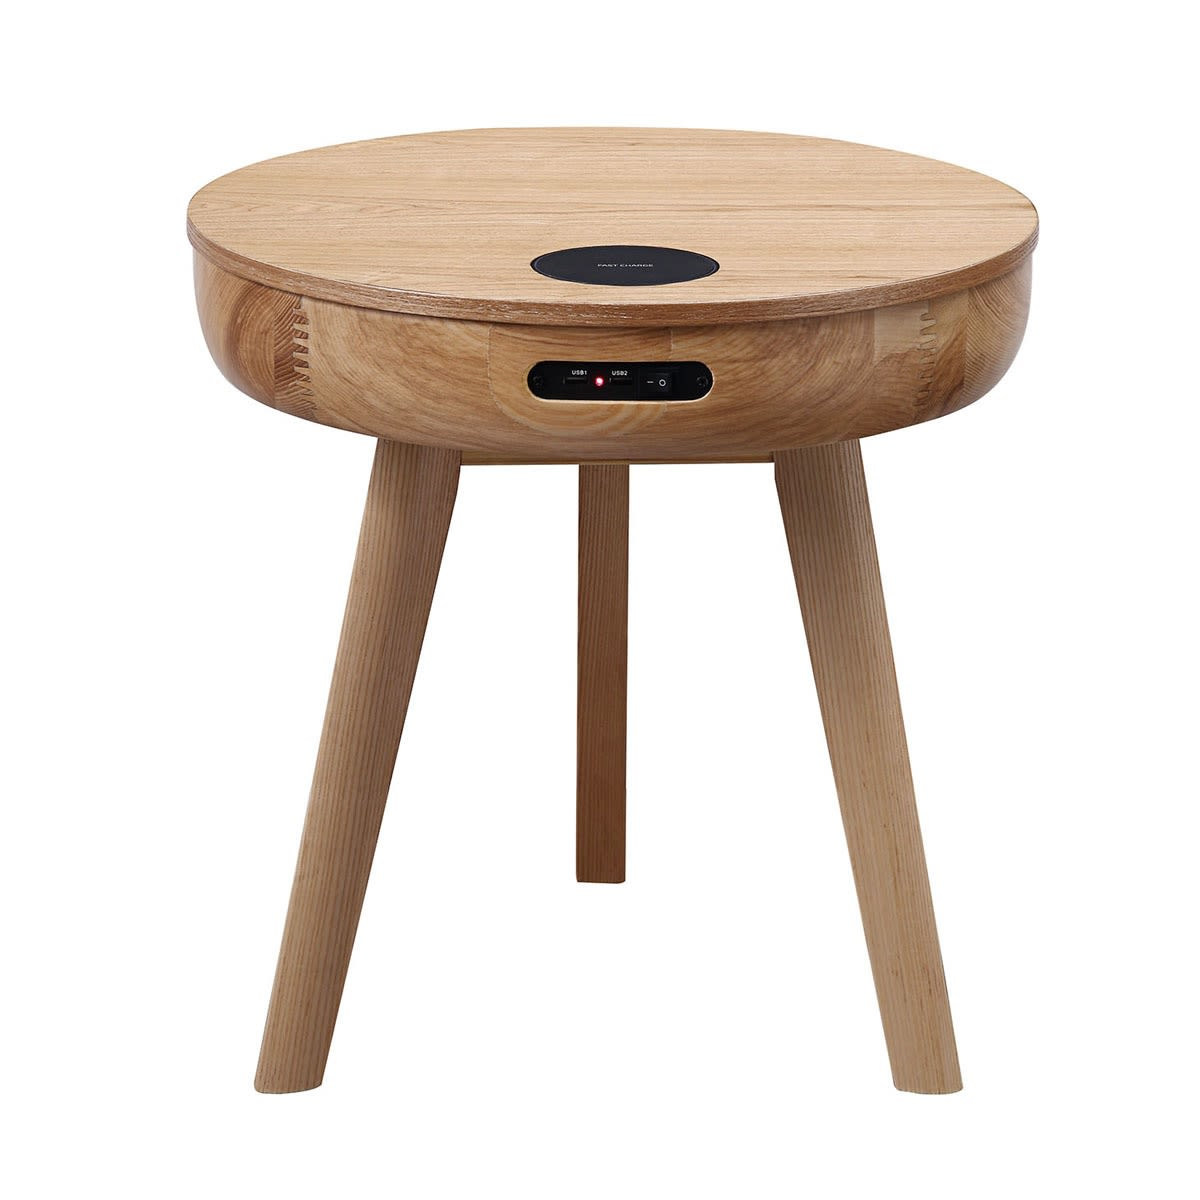 San Francisco Round Lamp Table With Qi Wireless Charger